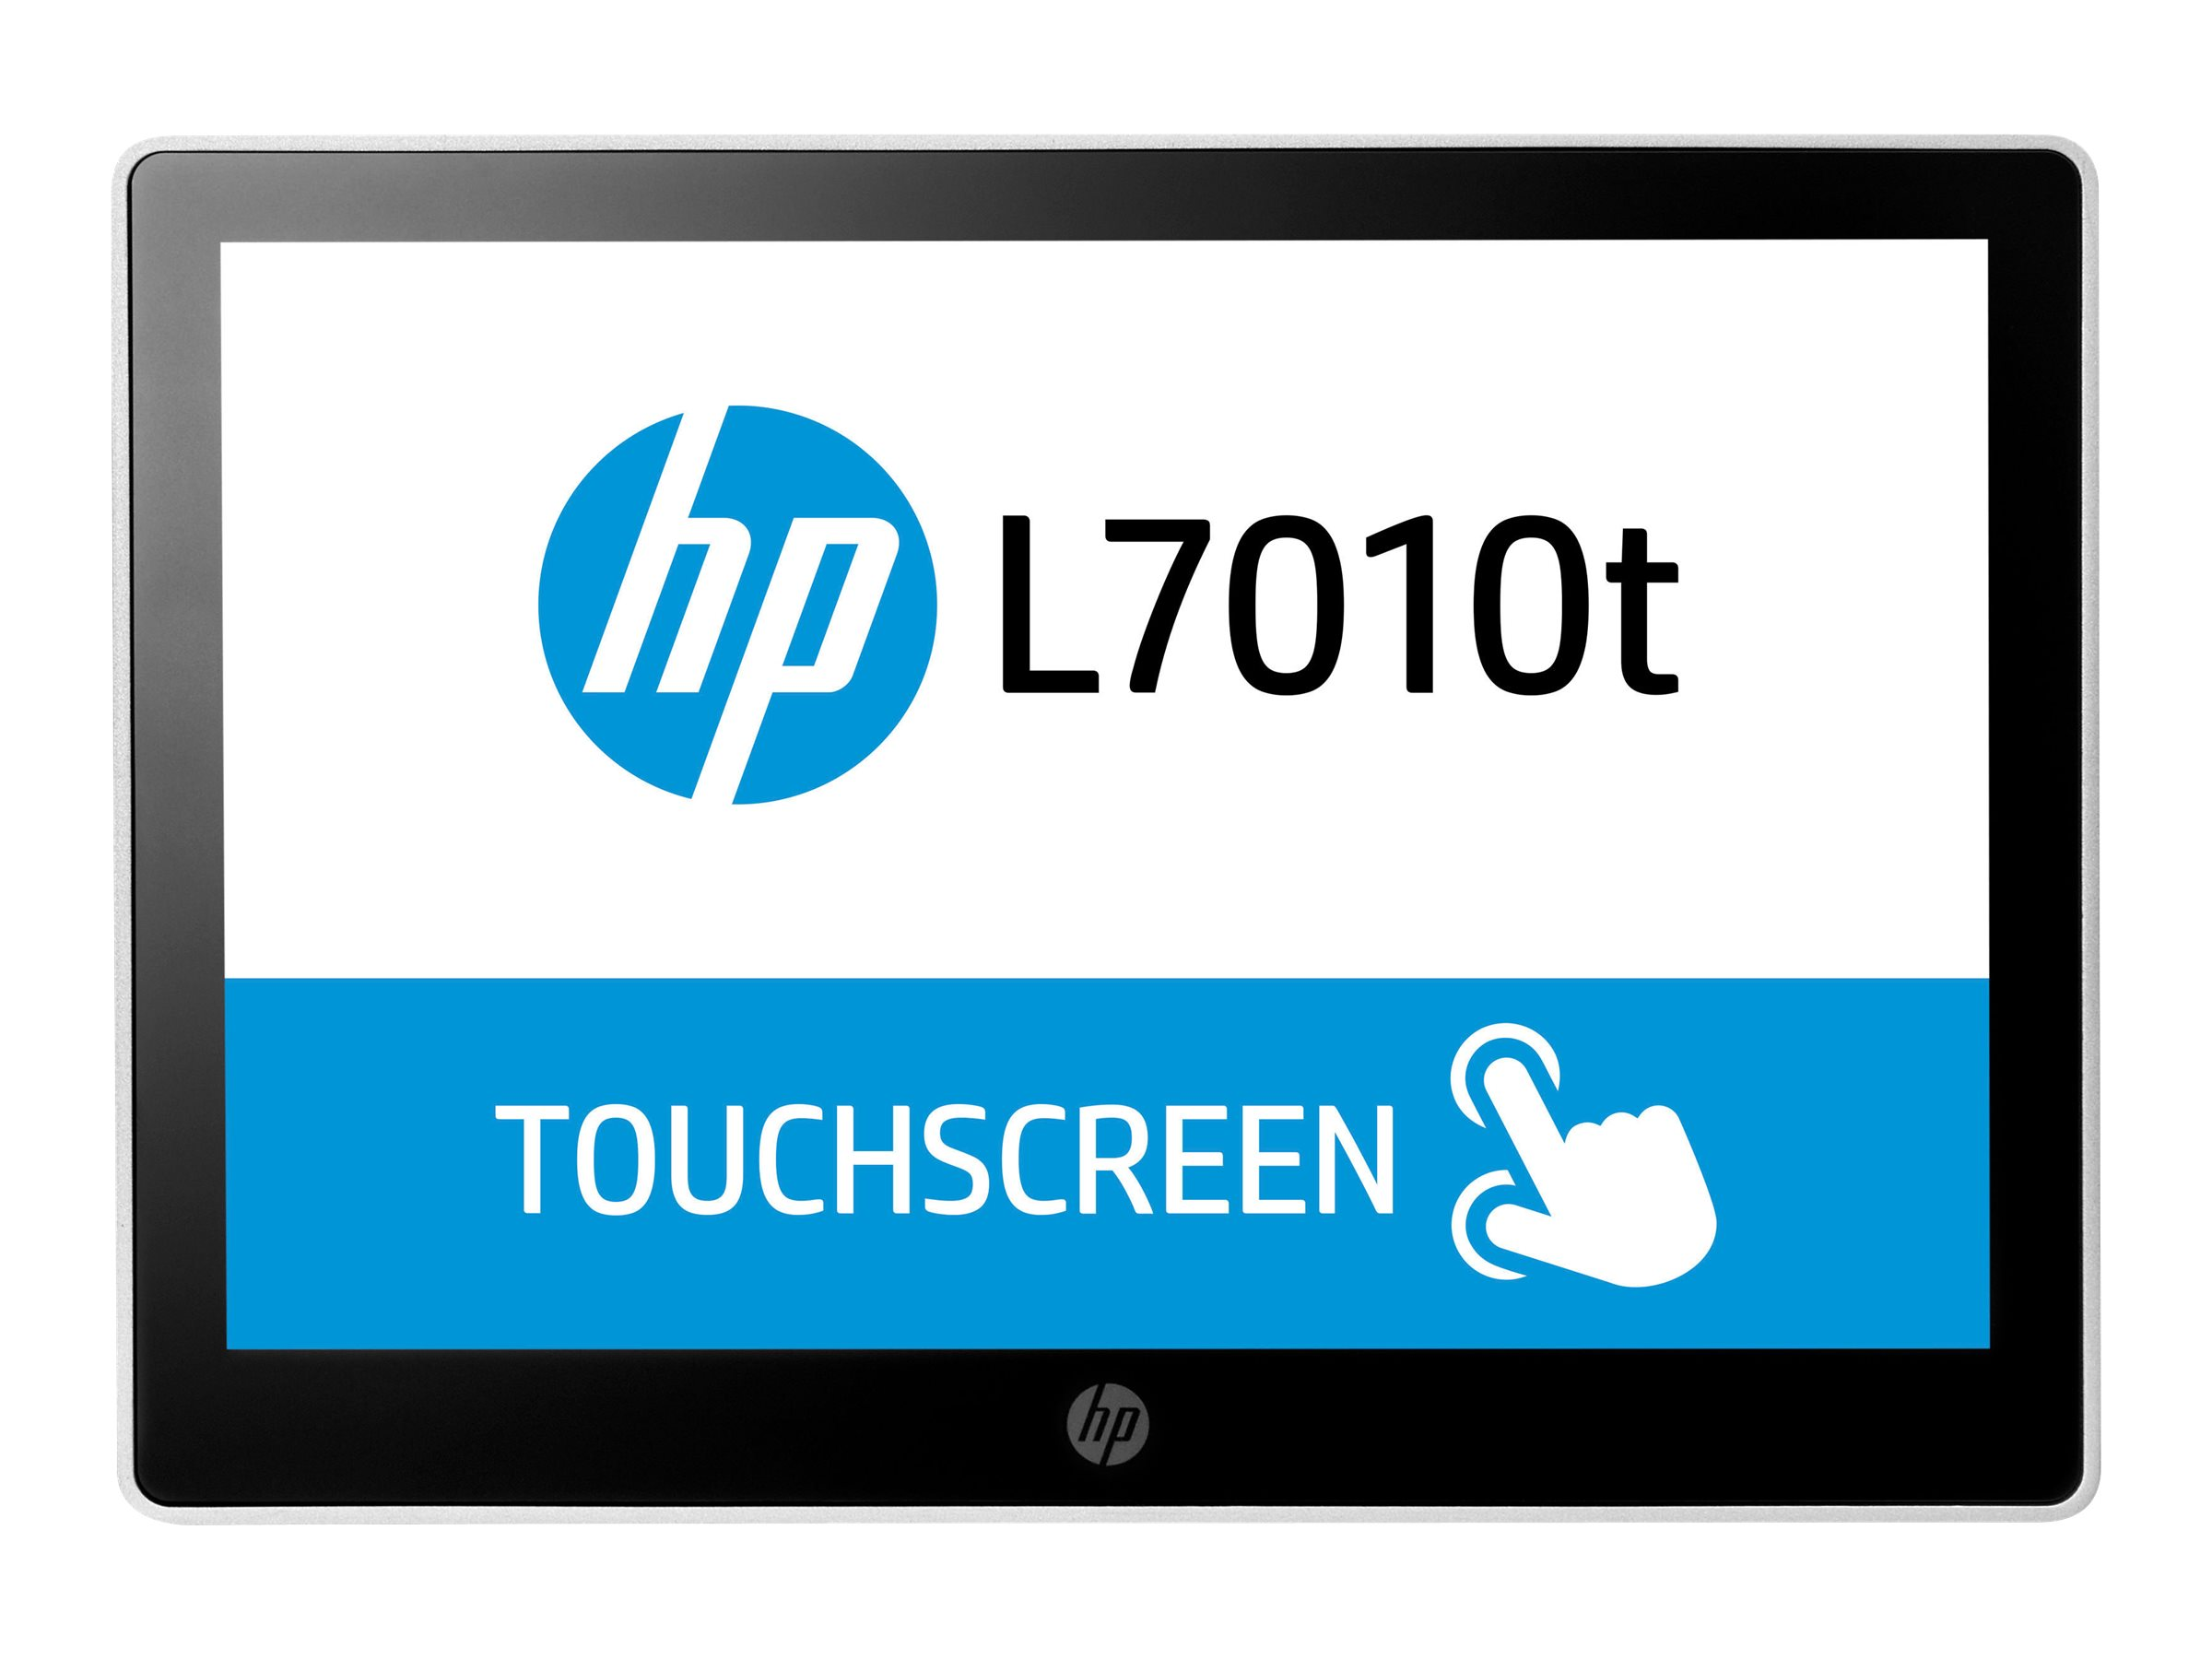 HP L7010t Retail Touch Monitor - LED-Monitor - 25.7 cm (10.1